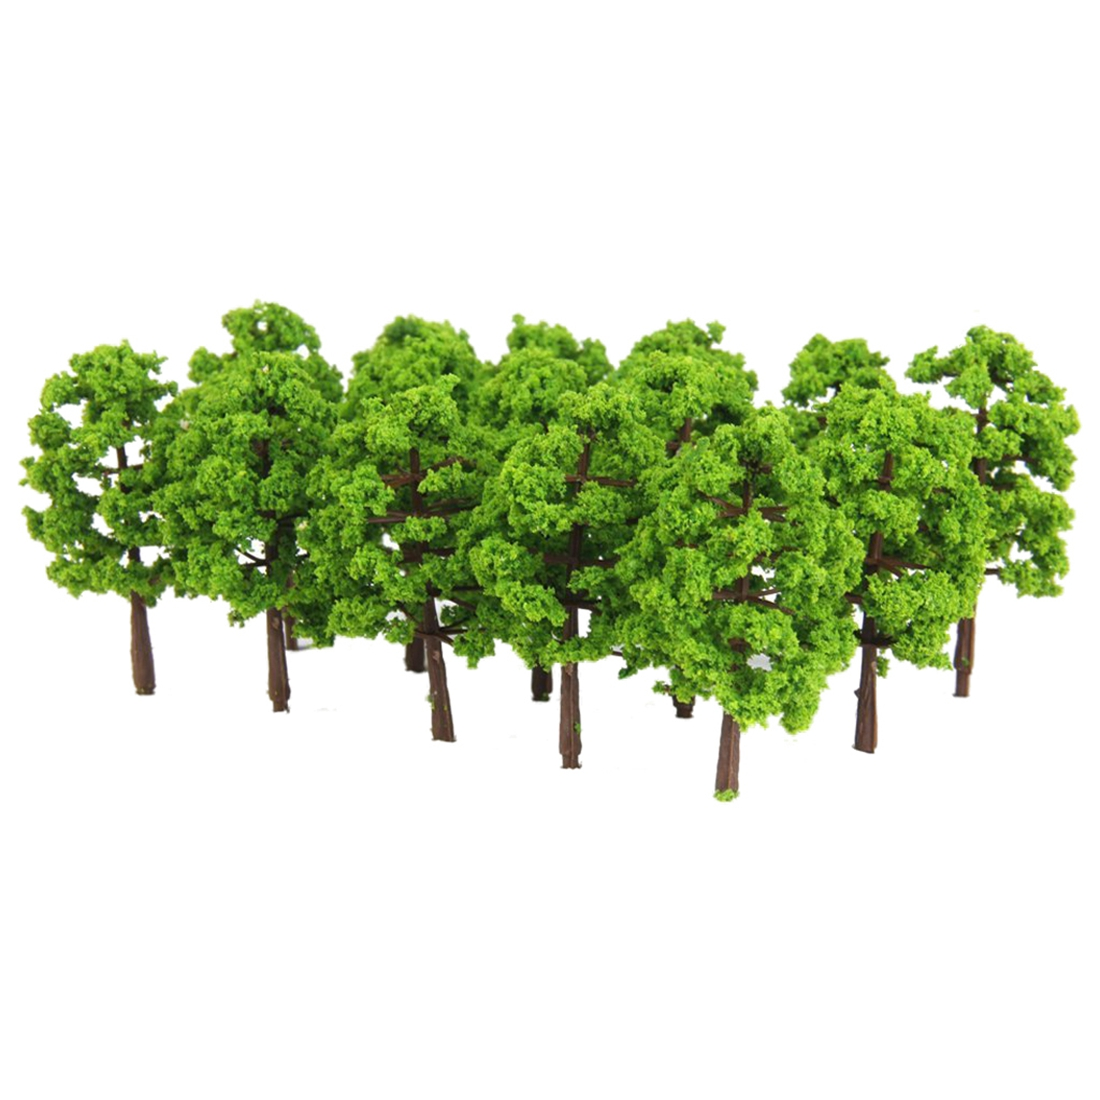 Plastic Model Tree Train Railway Landscape 1: 100 20 Pcs. Darkgreen